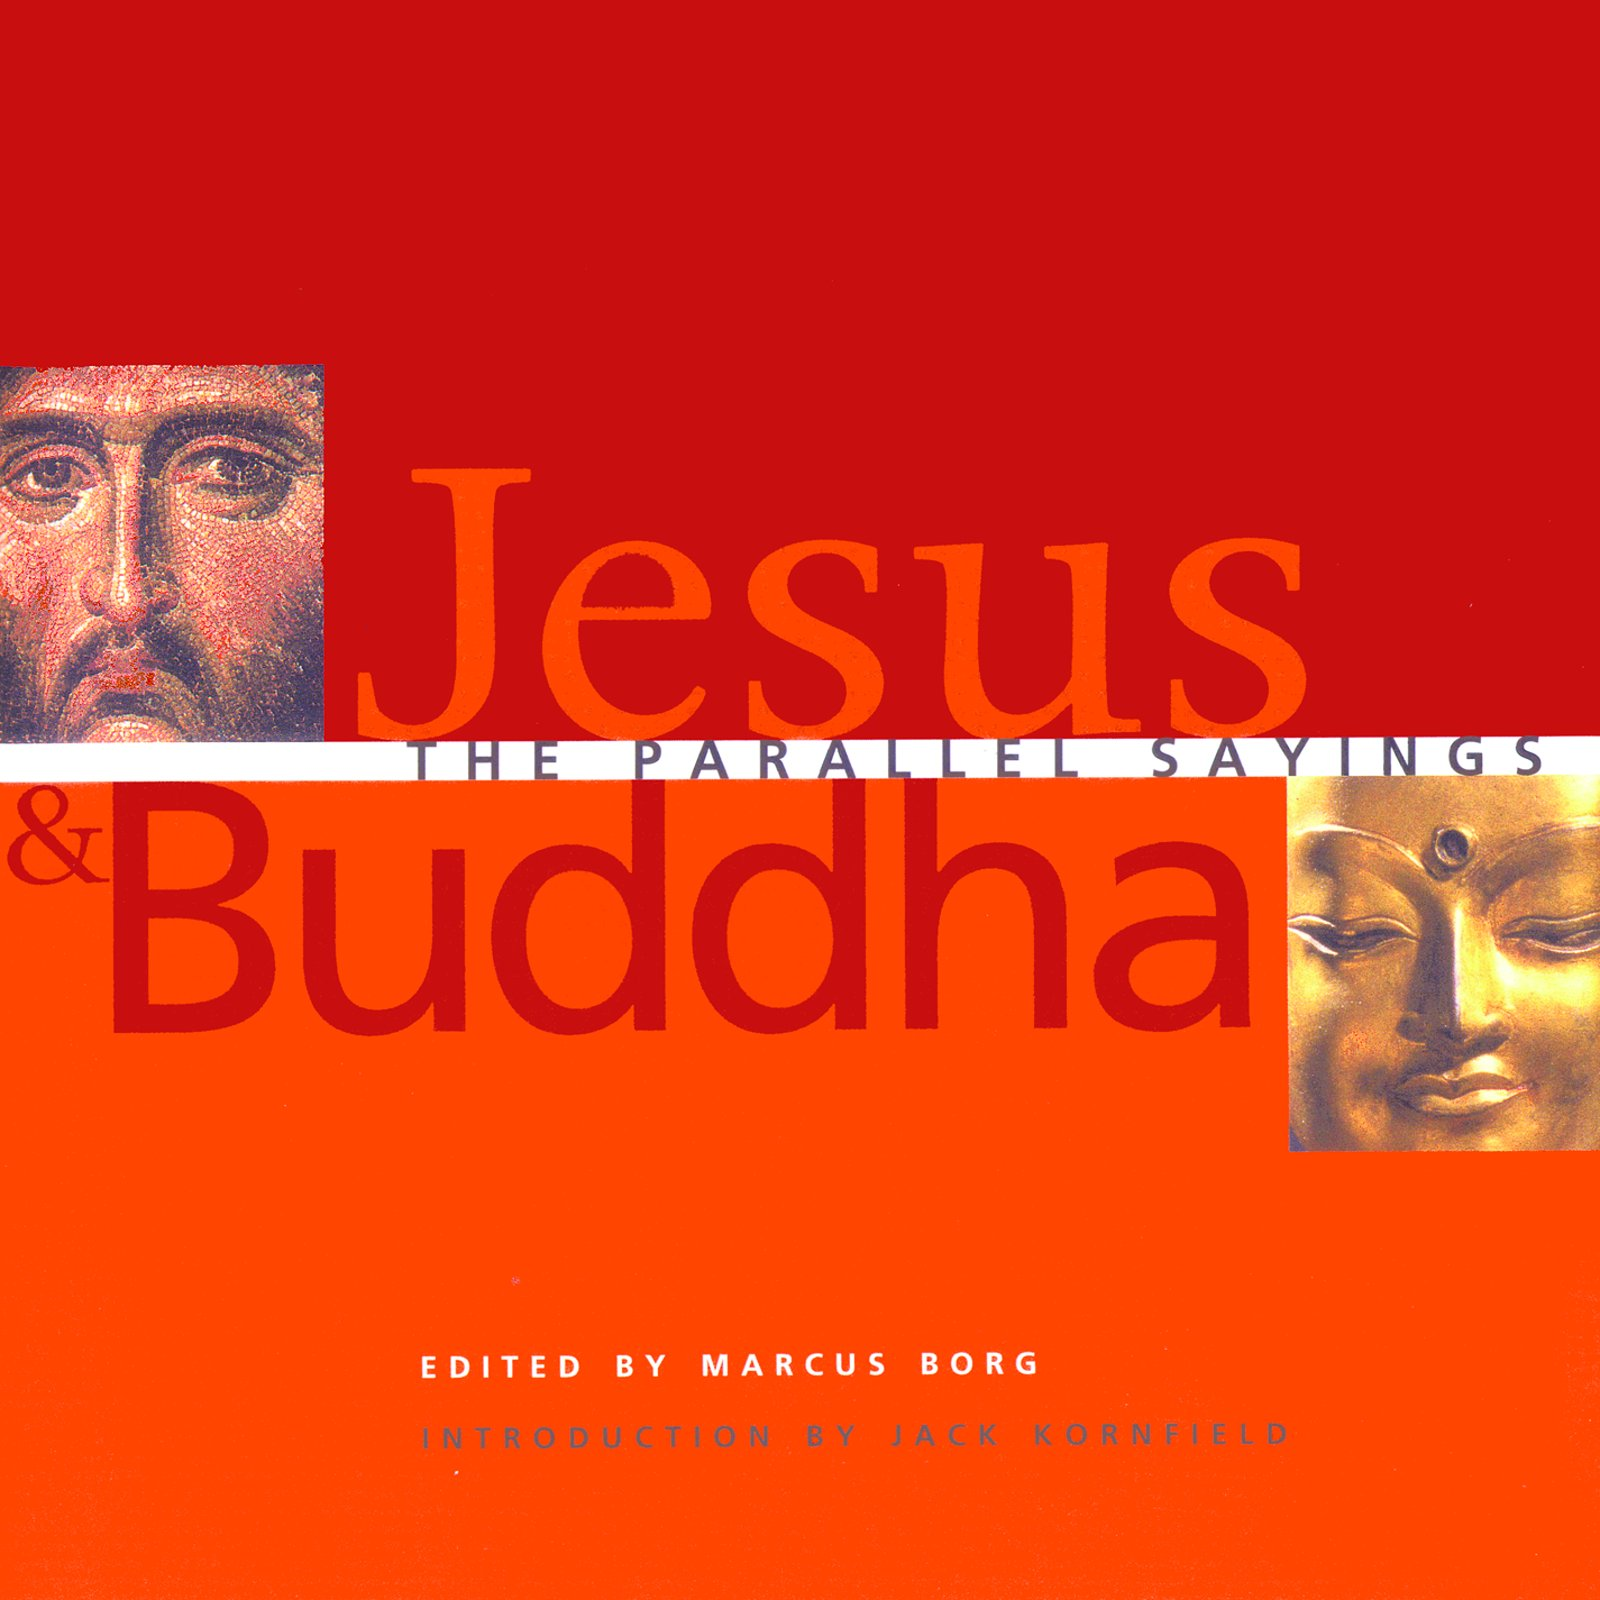 Jesus and Buddha: The Parallel Sayings pdf